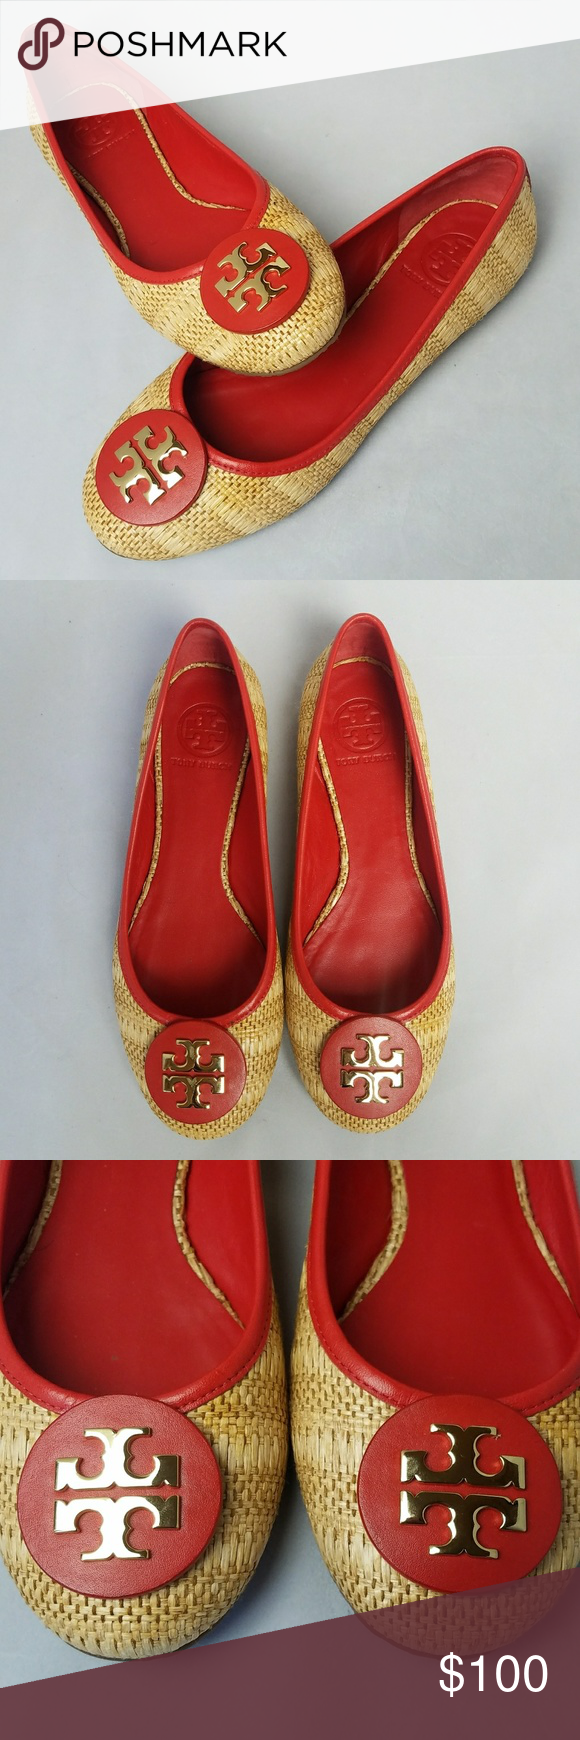 Tory Burch Reva ballet flats straw raffia red 8 Item: Tory Burch Reva straw/natural red leather ballet flats in 8M  -Raffia straw version of the iconic Reva ballet flat. It's Tory Burch's signature shoe, named after Tory's mother, Reva.  -Please note, the red leather has orange undertones.  Condition: Excellent pre-owned condition, minor signs of wear on sole. Otherwise, they look brand new. Tory Burch Shoes Flats & Loafers